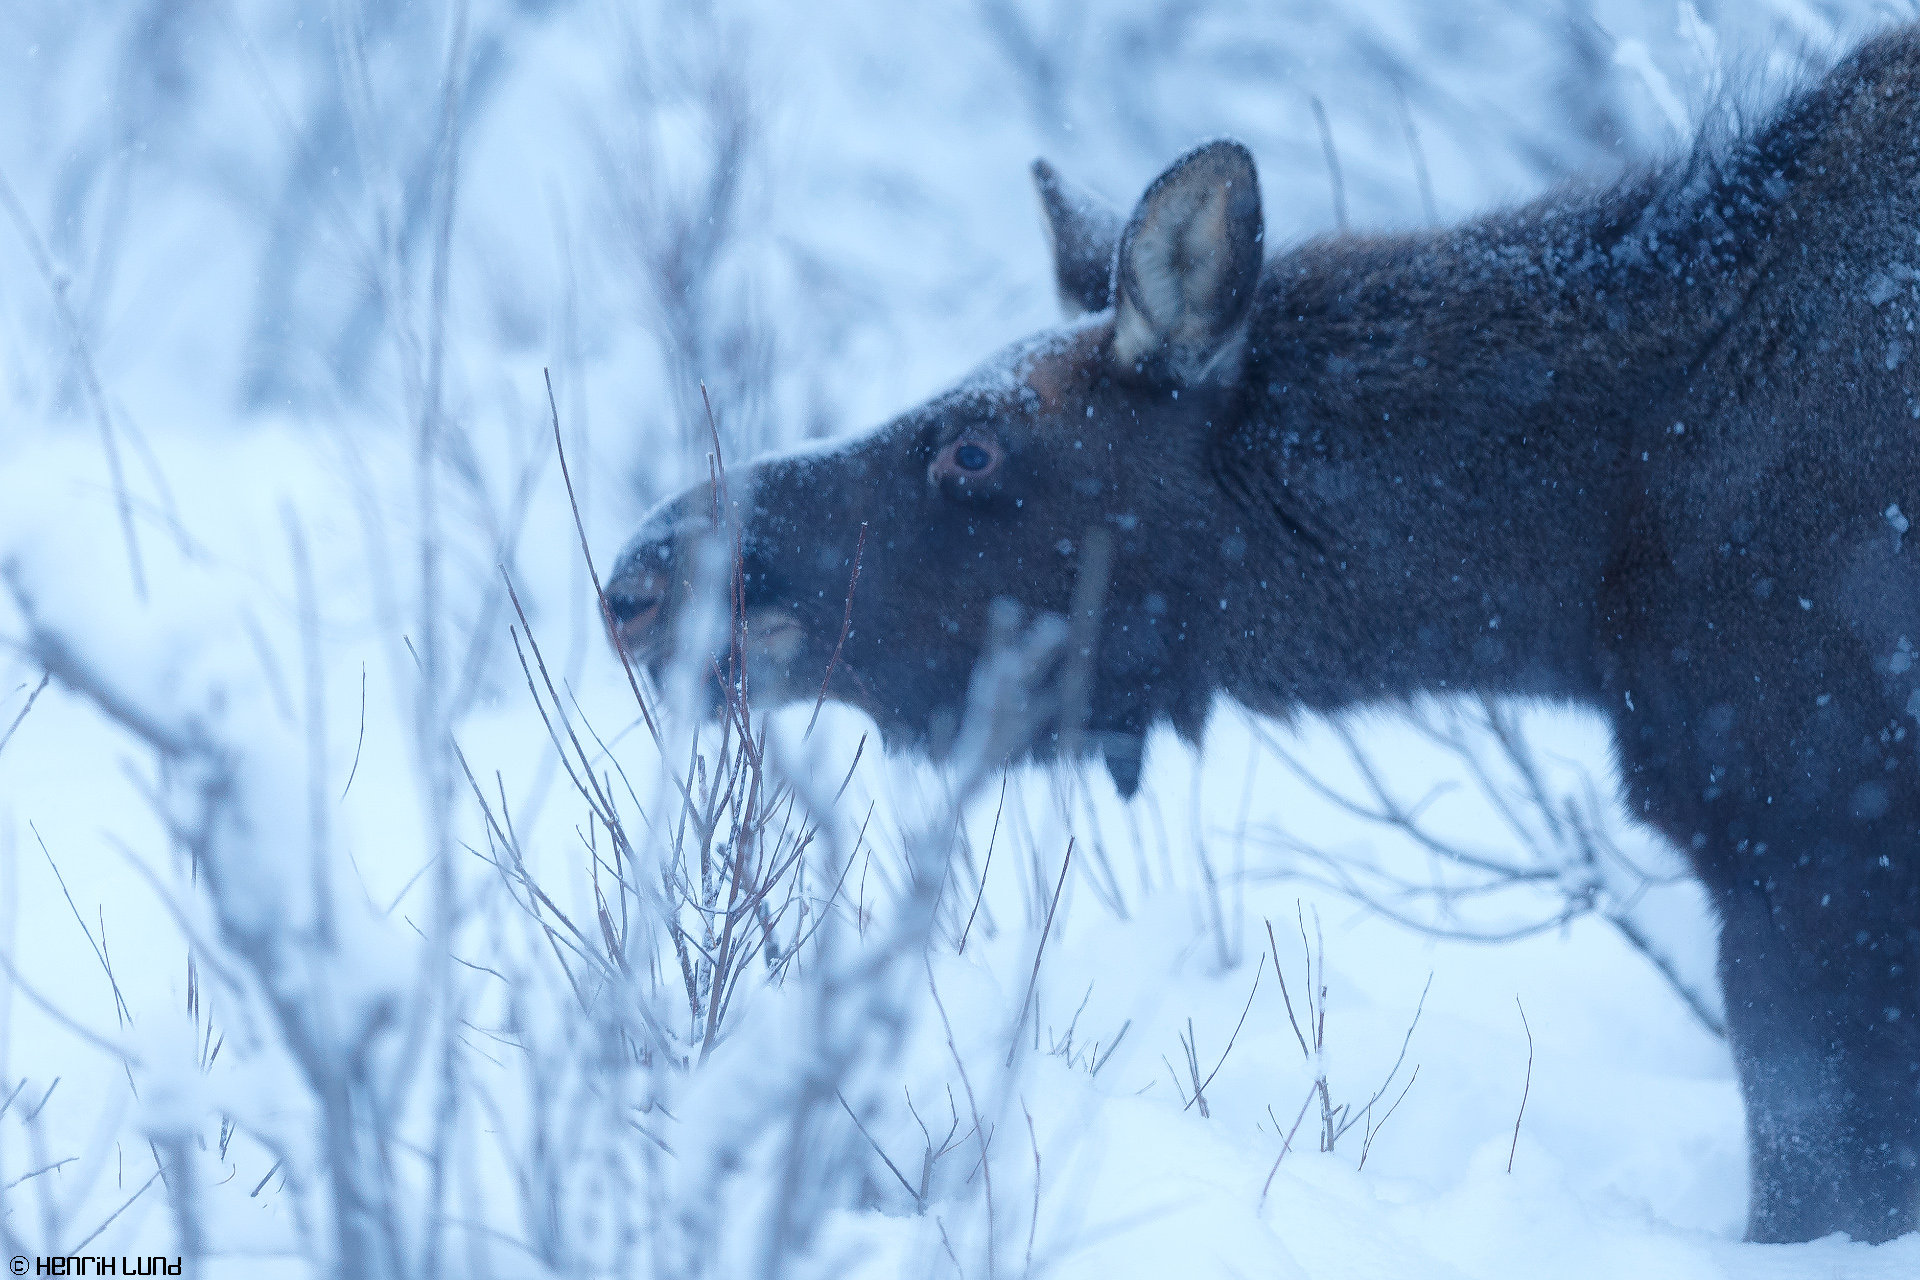 Moose eating branches in Laukkuluspa, Kiruna, Northern Sweden. January, 2015.